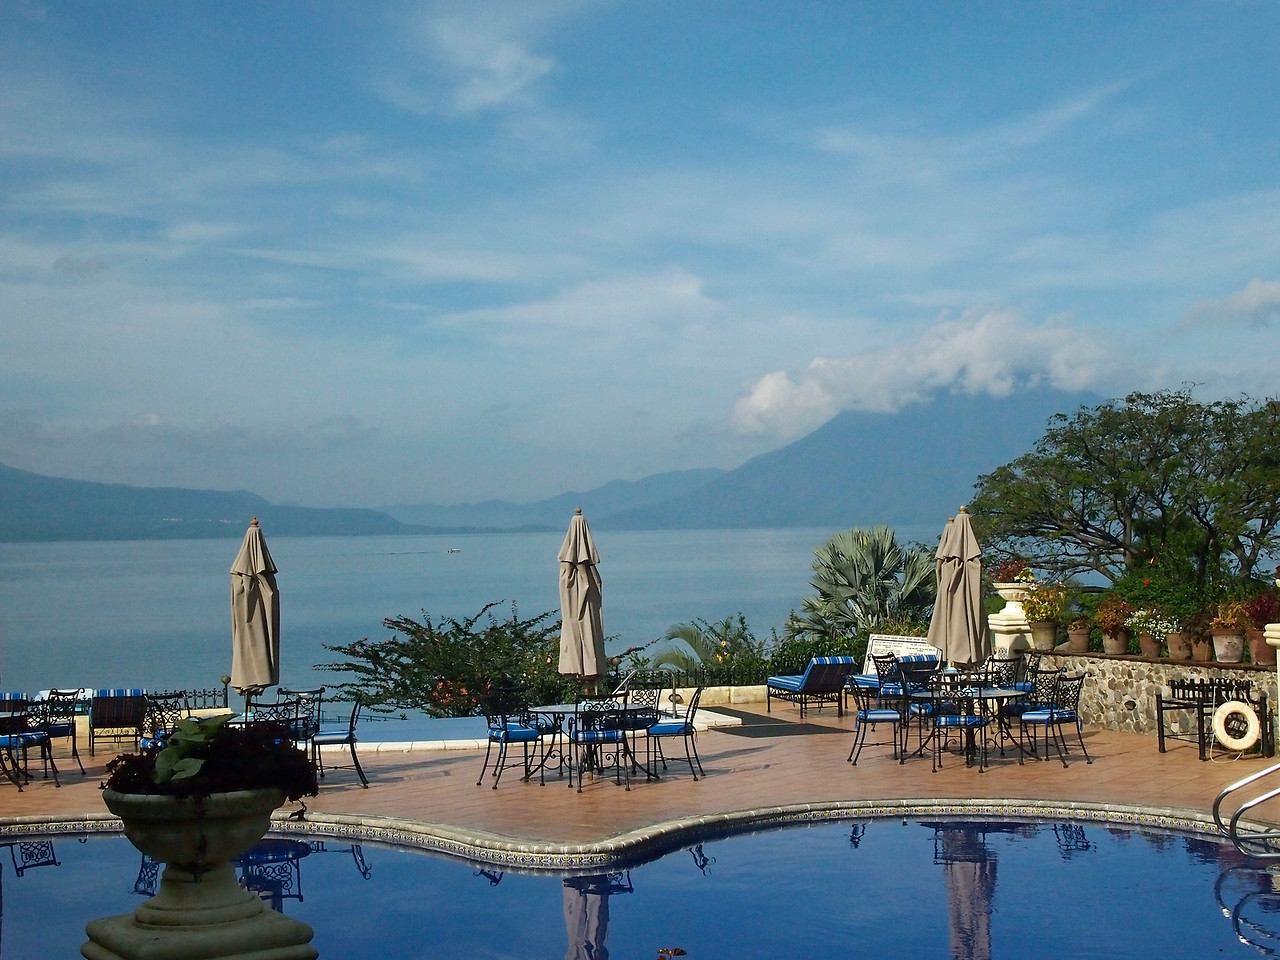 Lake Atitlan and Volcan San Pedro